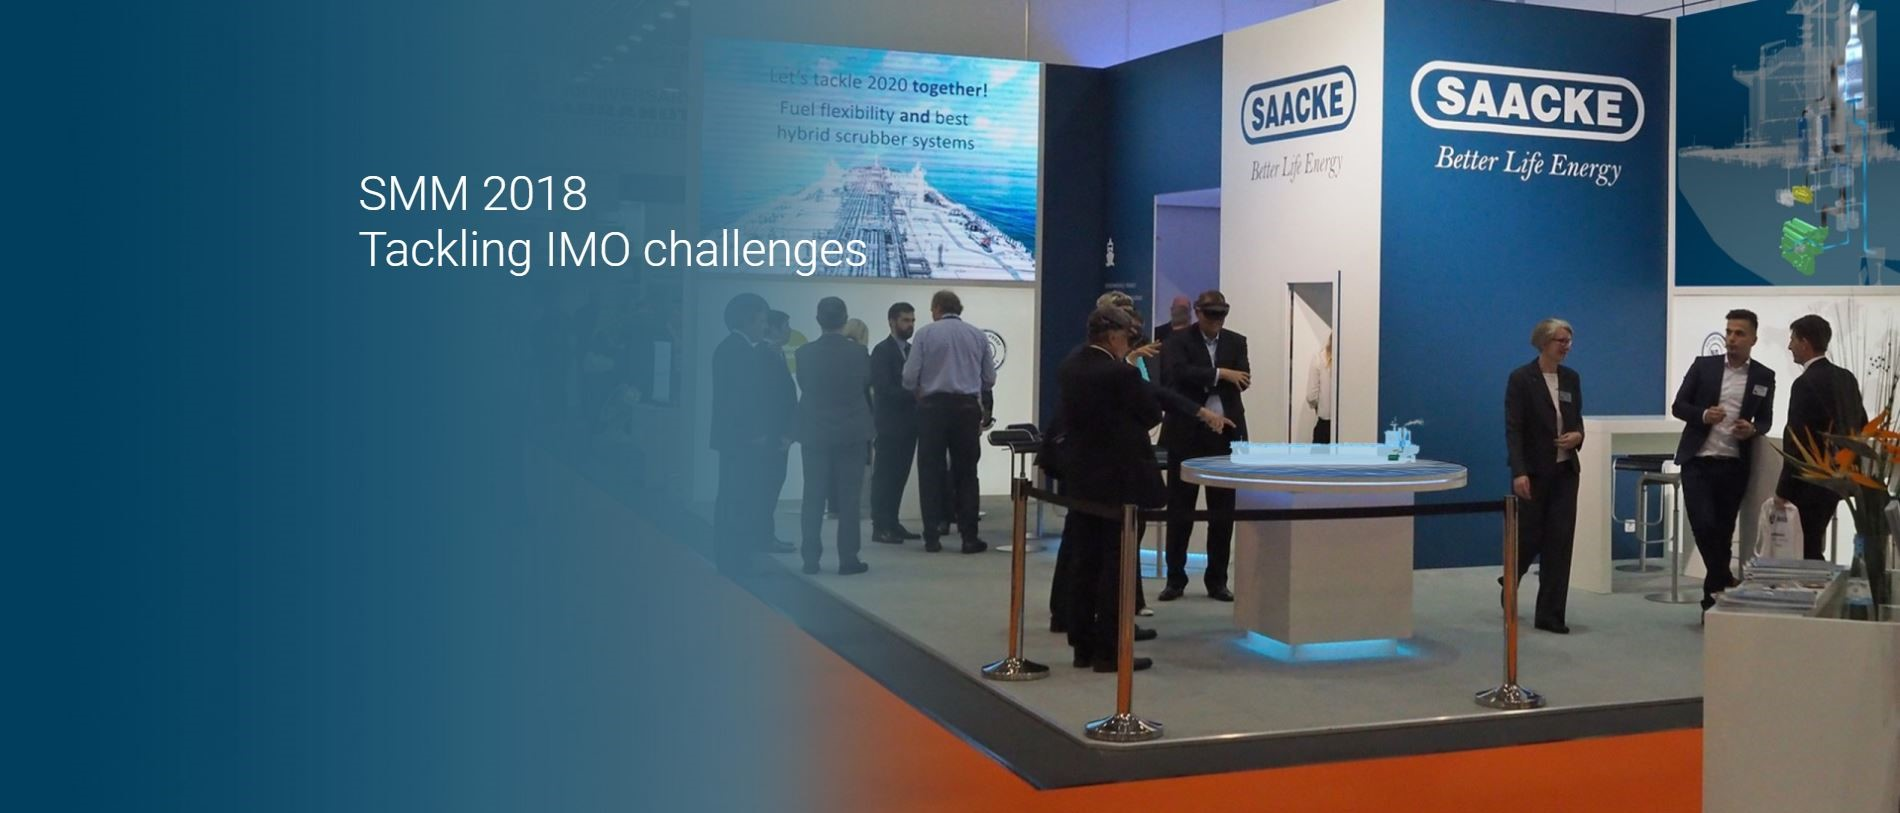 SMM 2018 Tackling IMO challenges